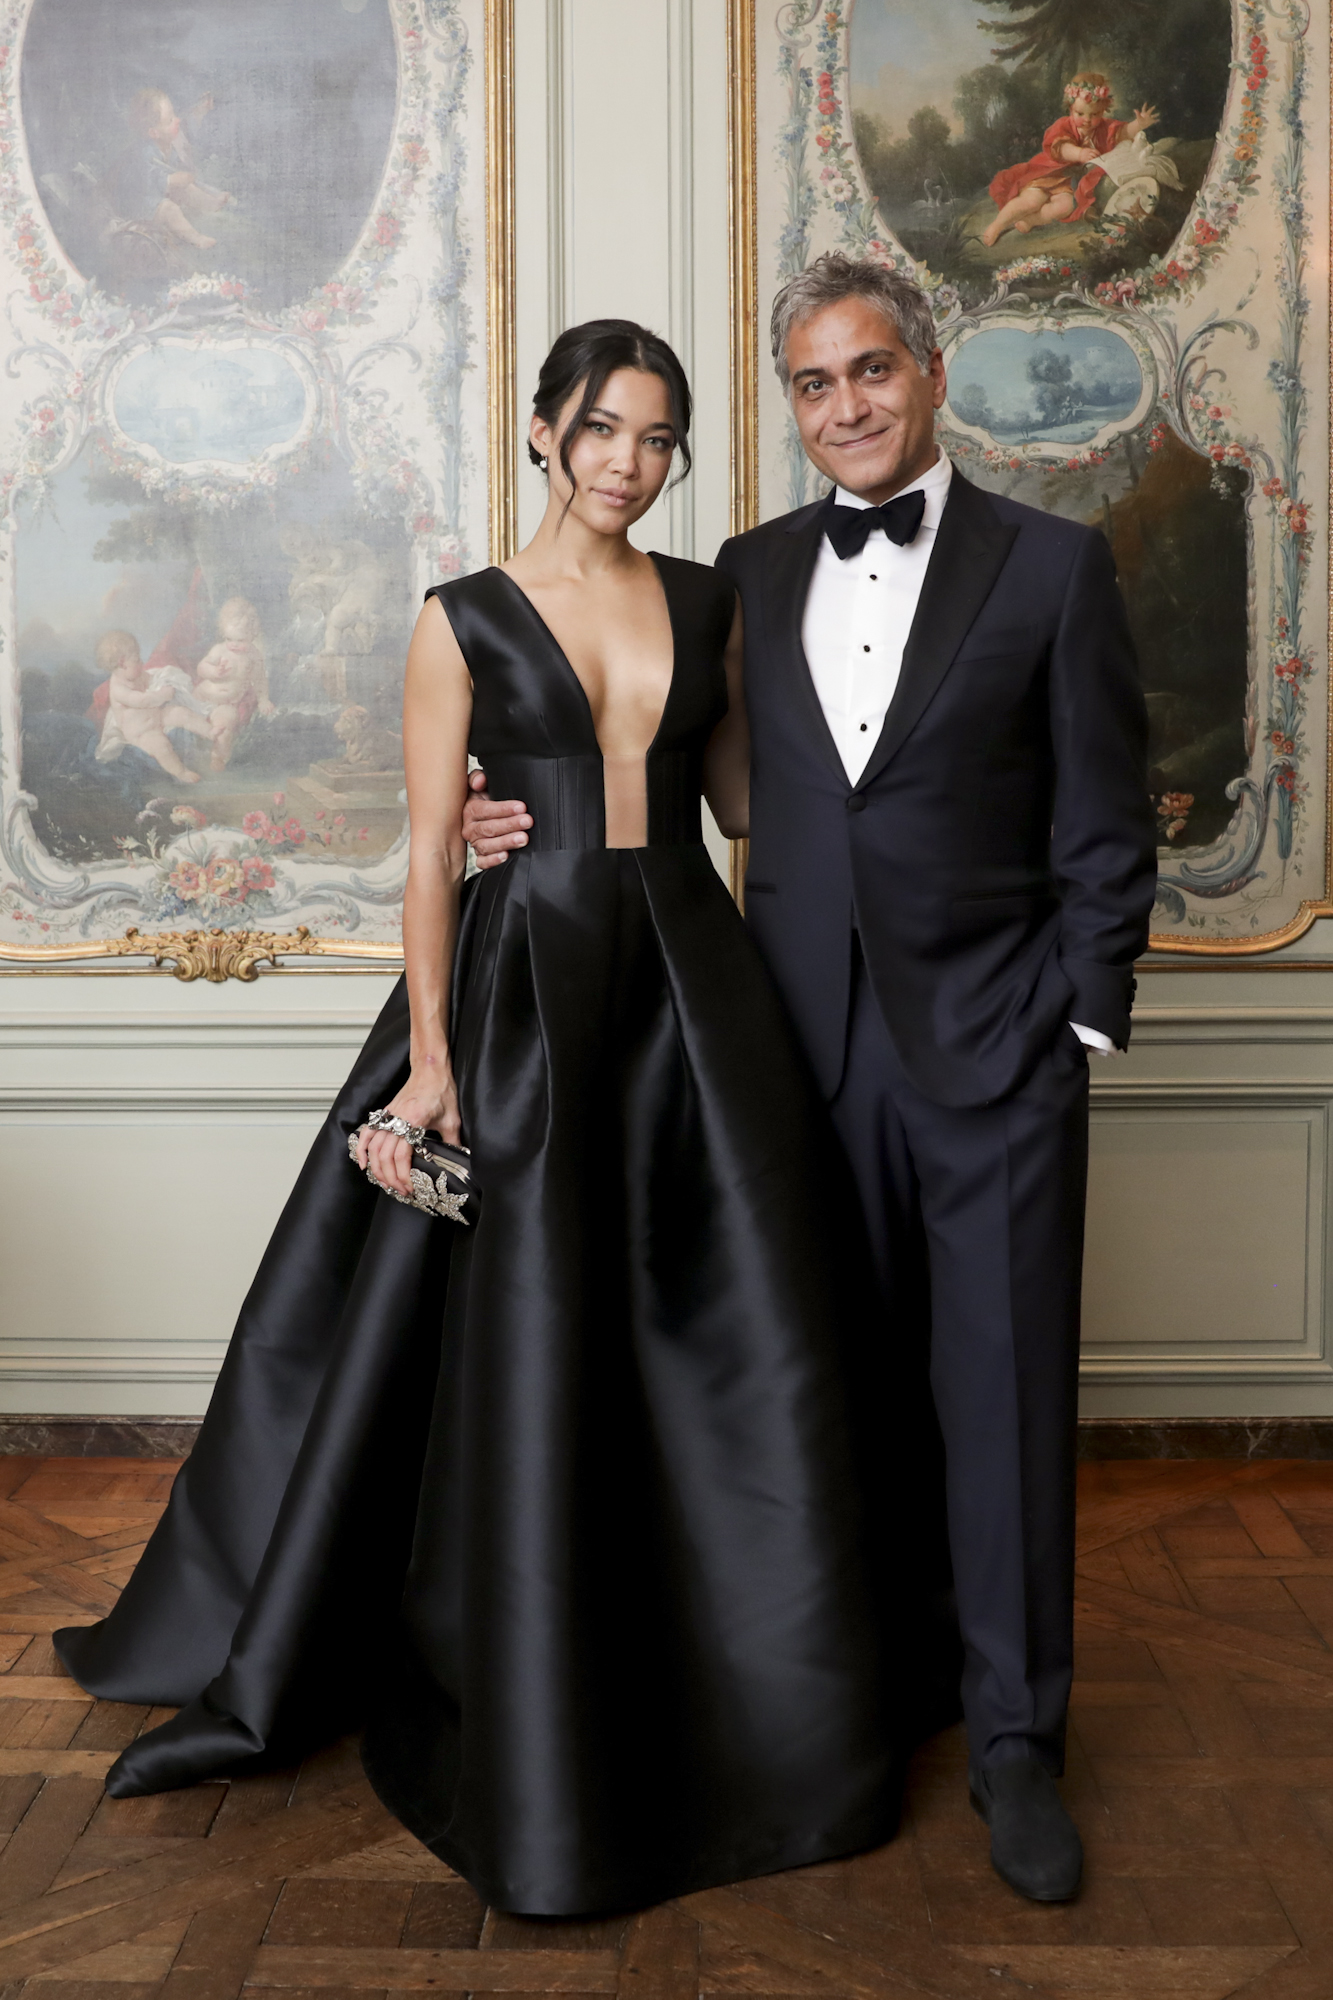 Kaya Hall and Reza Bundy attend The Frick Collection's 20th Annual Young Fellows Ball at 1 East 70th Street on Thursday, March 21st, 2019. Photography, Courtesy of The Frick Collection.